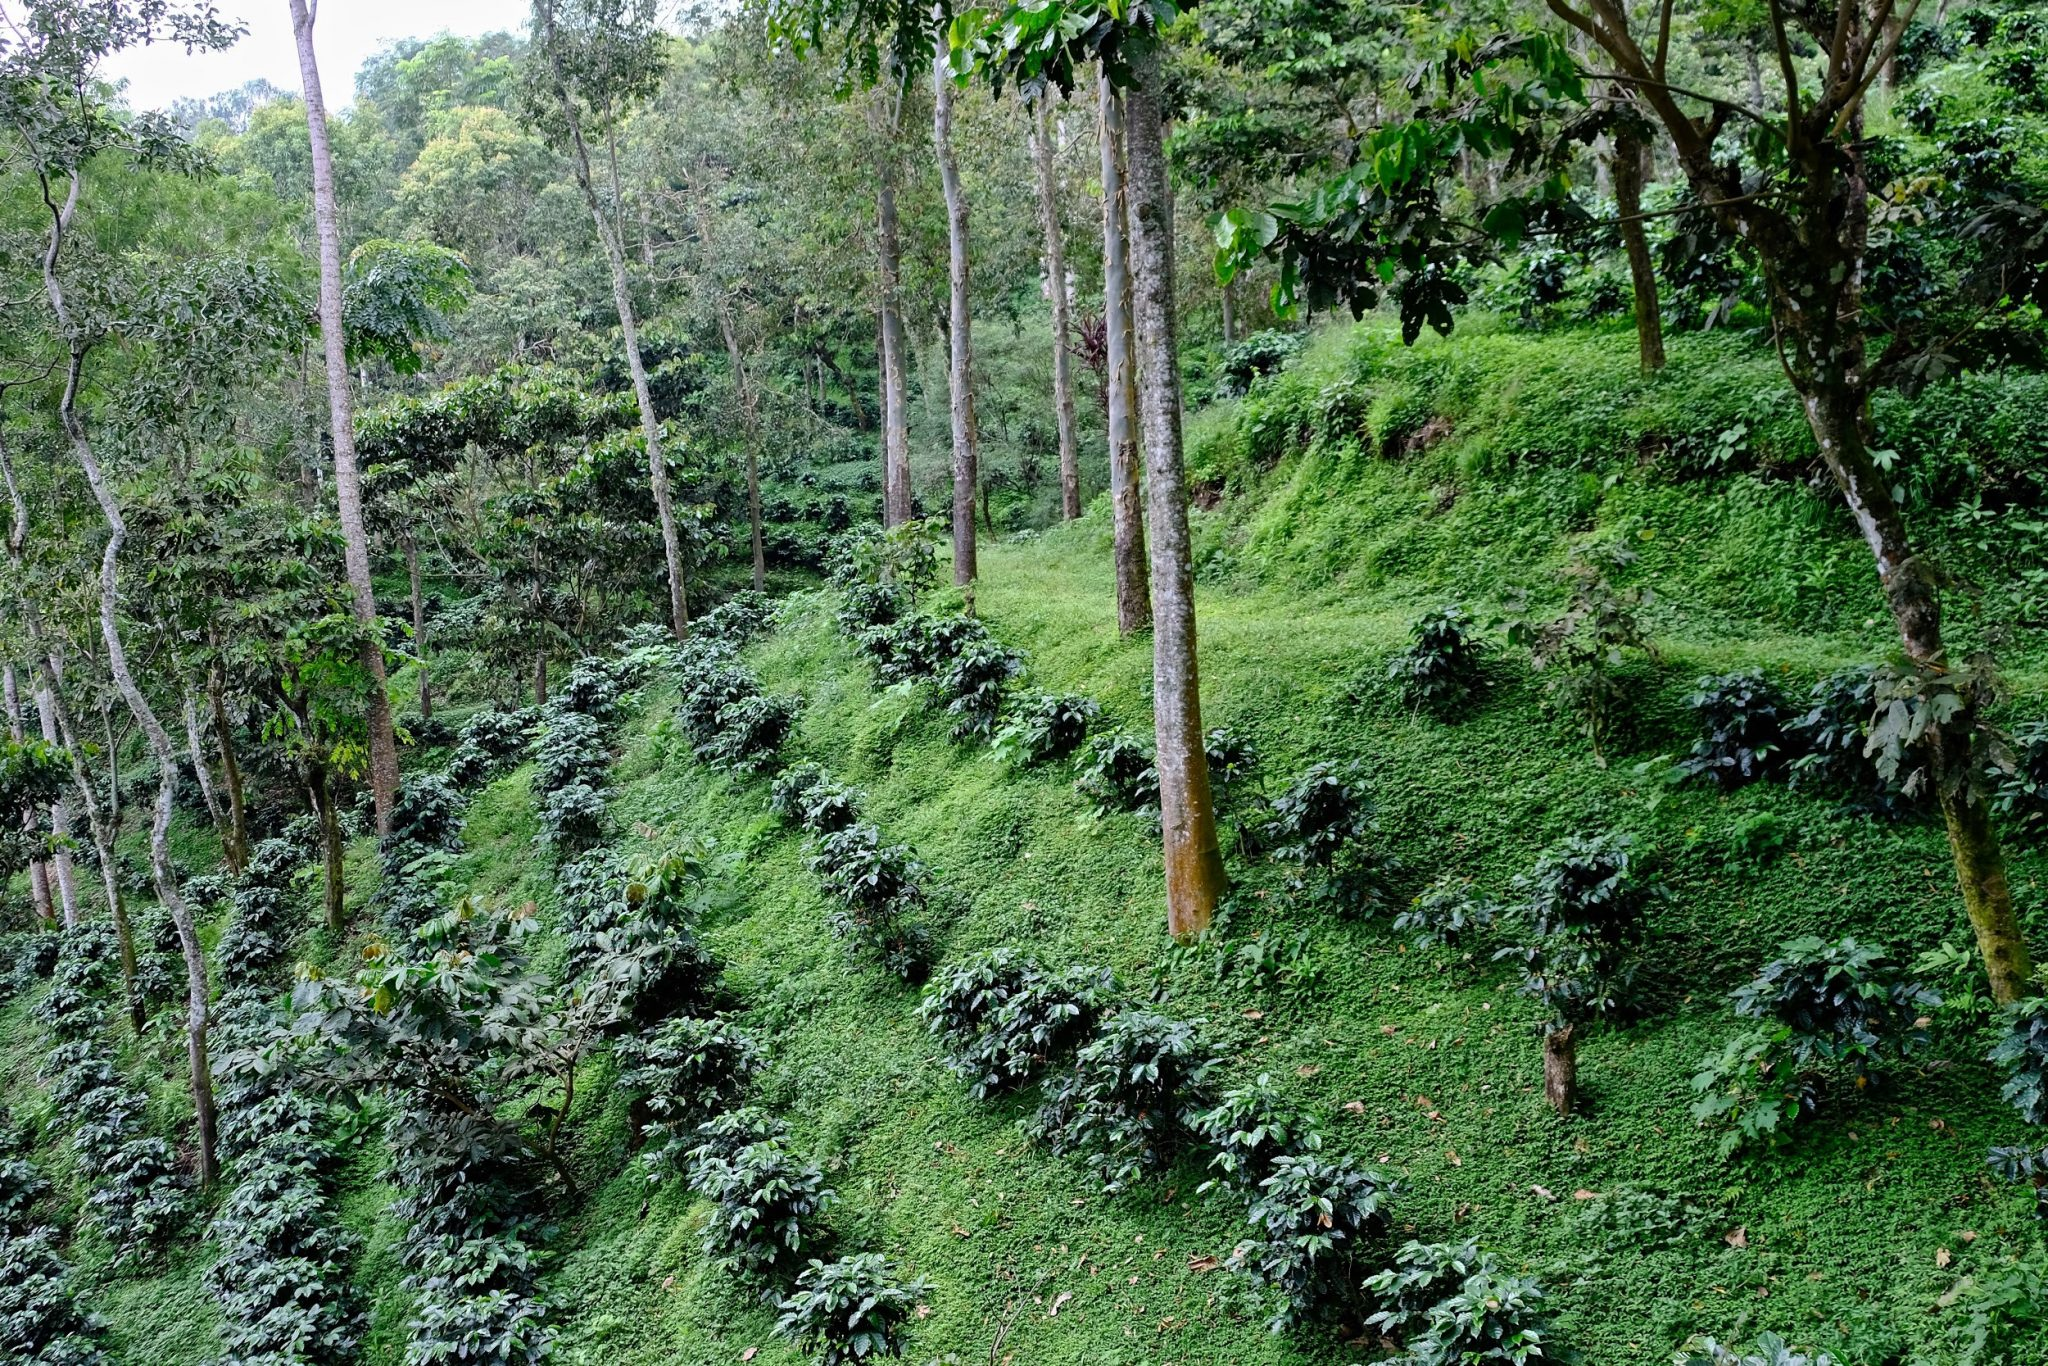 young coffee trees grow in rows on a mountain